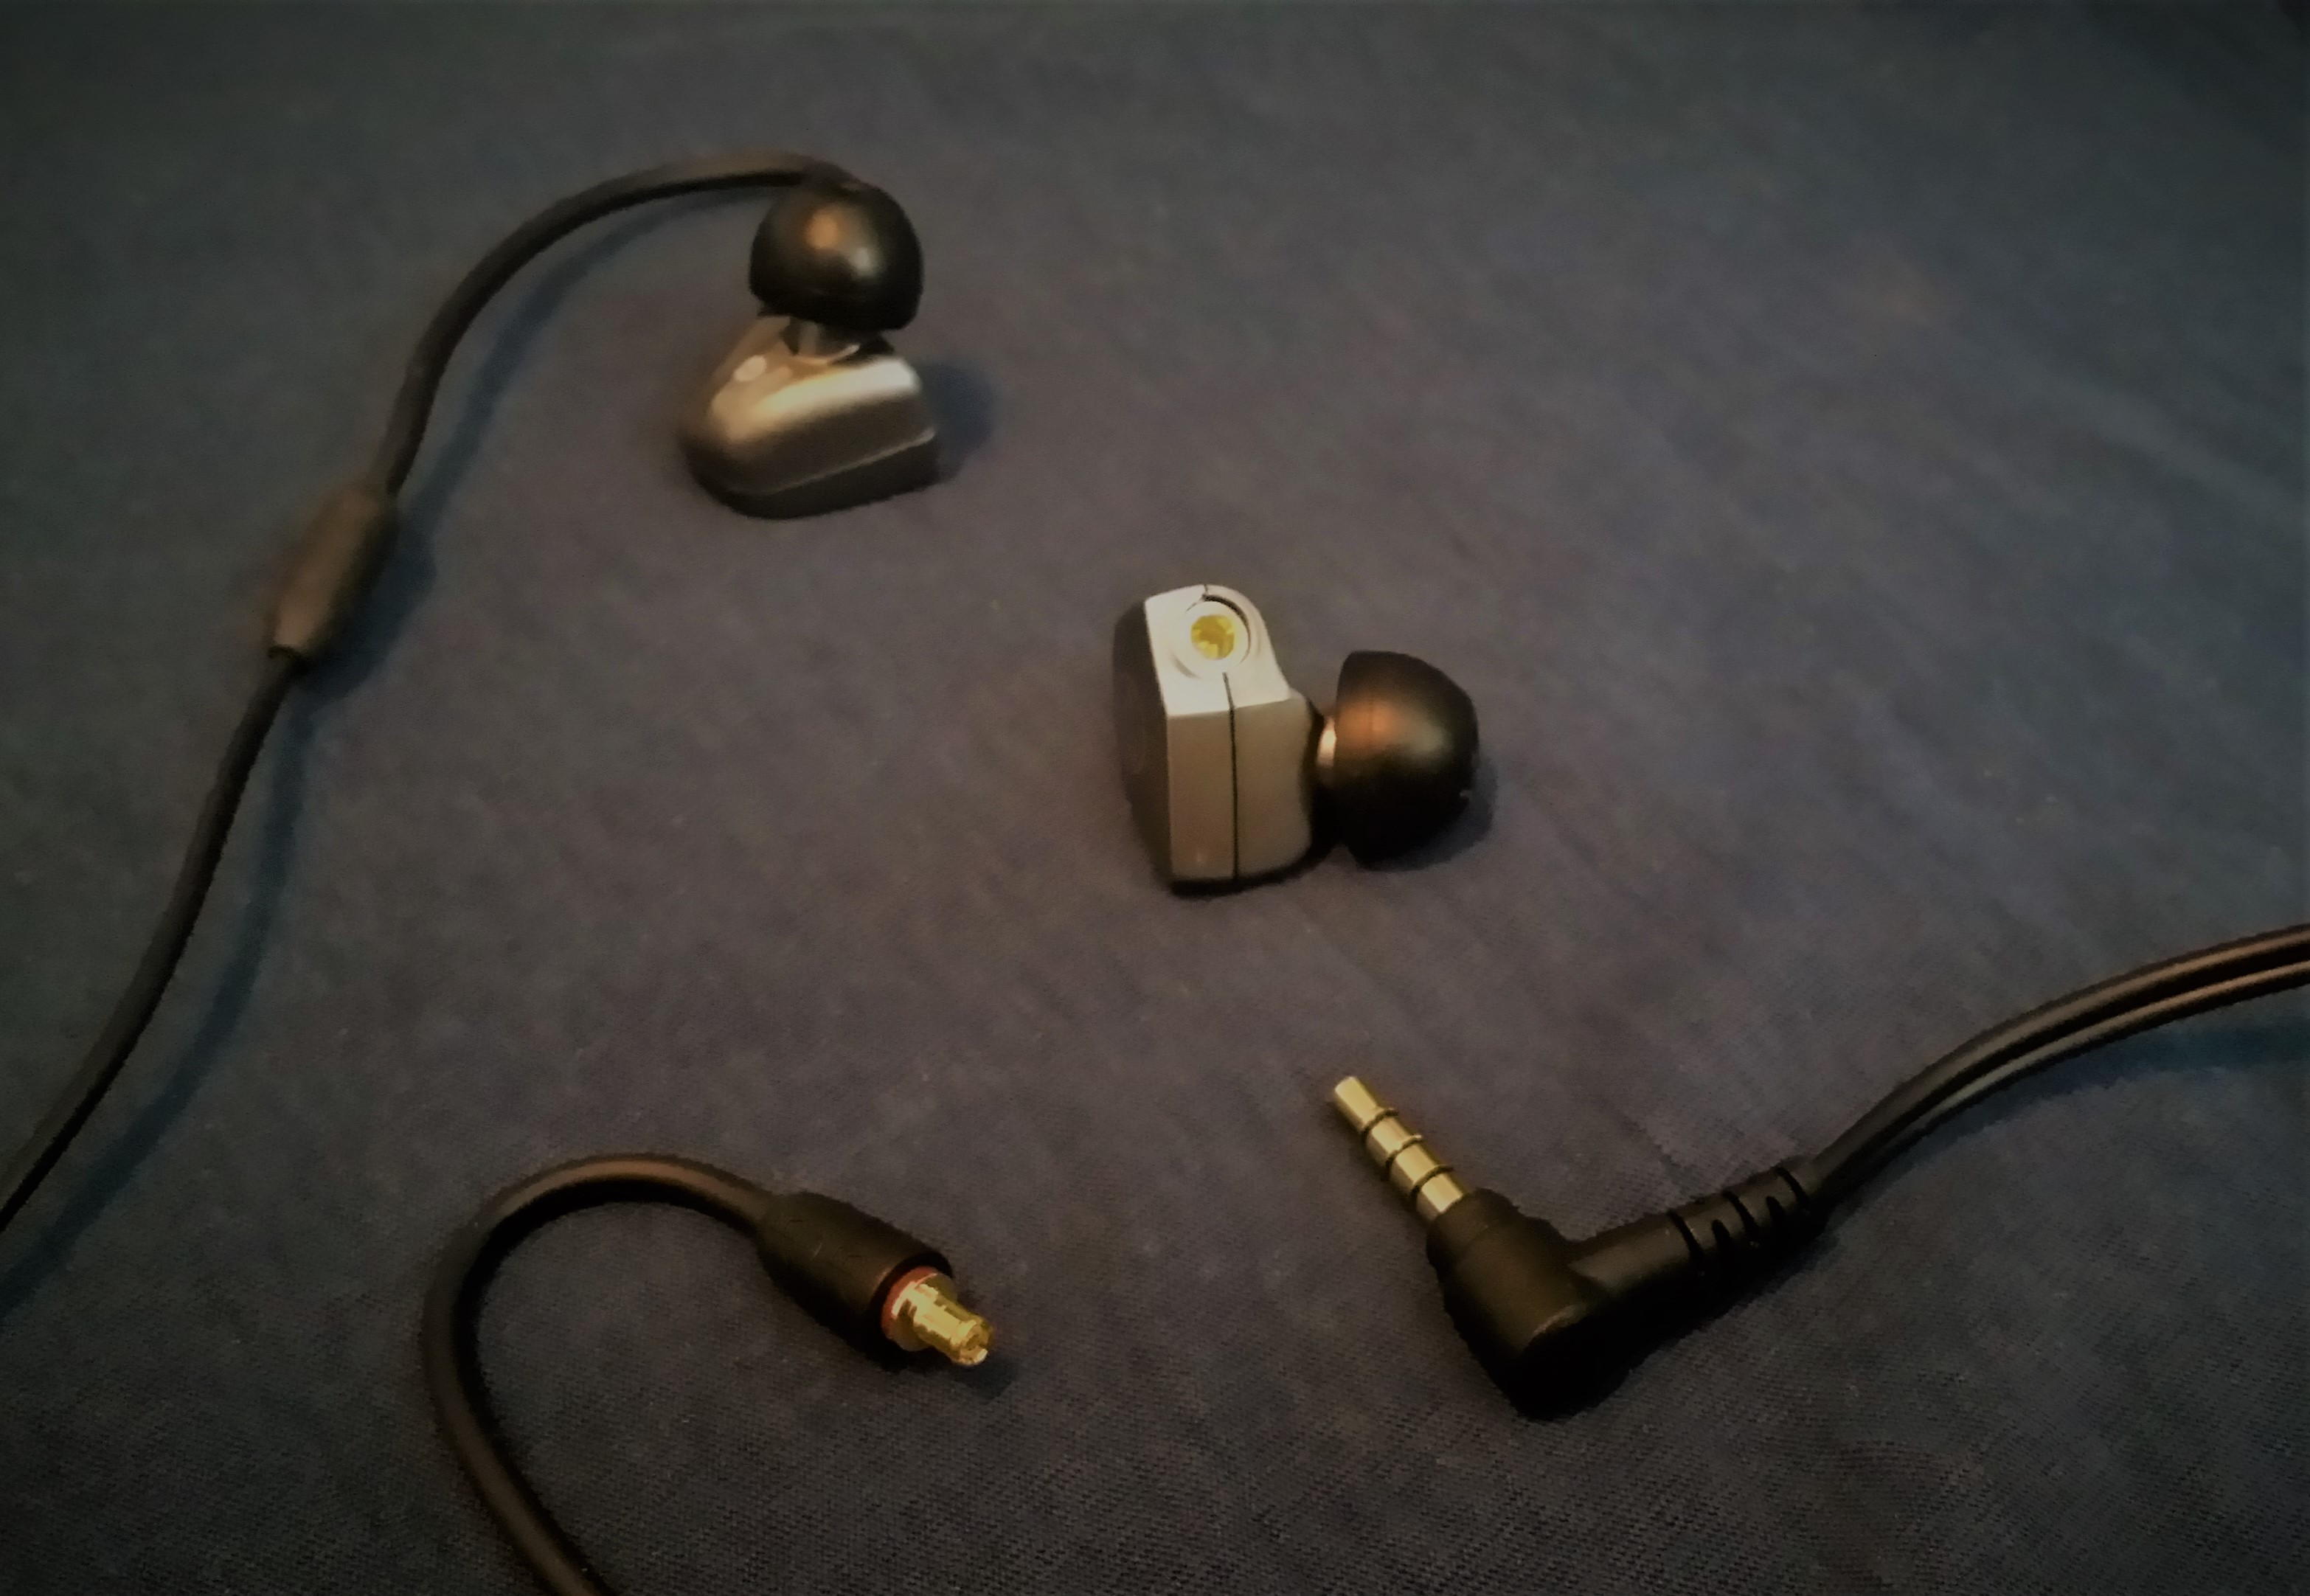 Audio-Technica ATH-LS70is | Headphone Reviews and Discussion